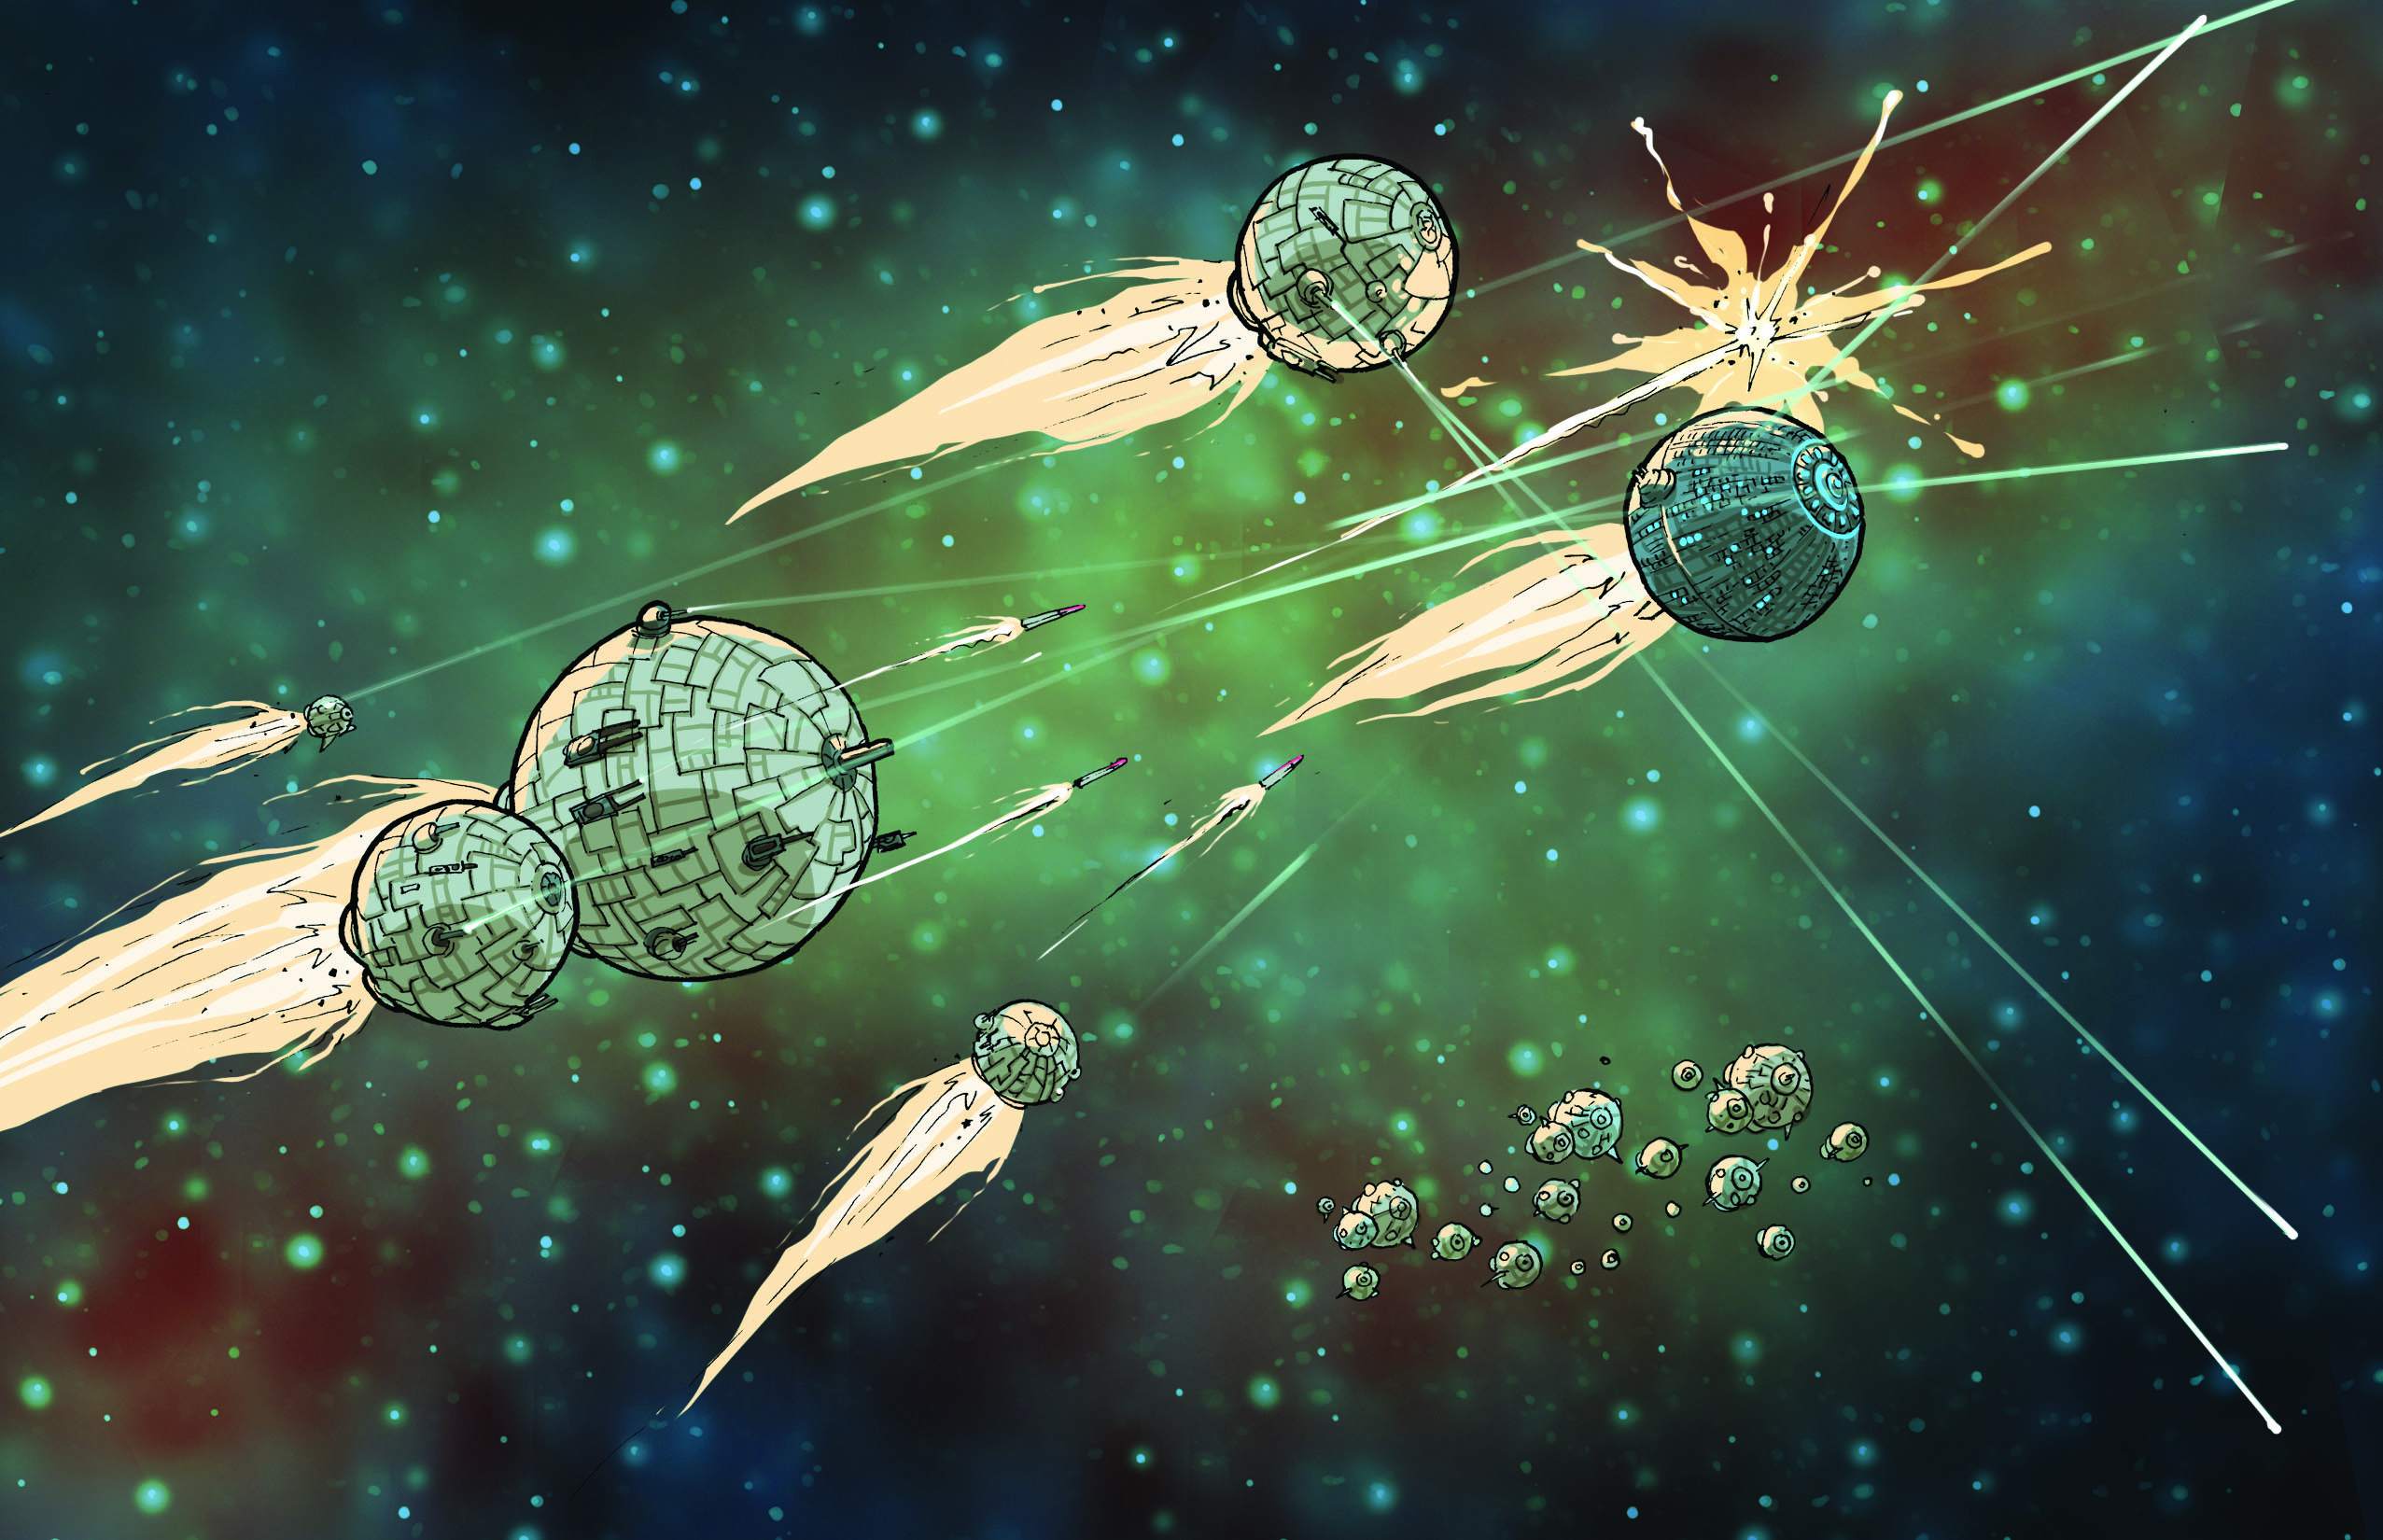 A Pitched Space Battle